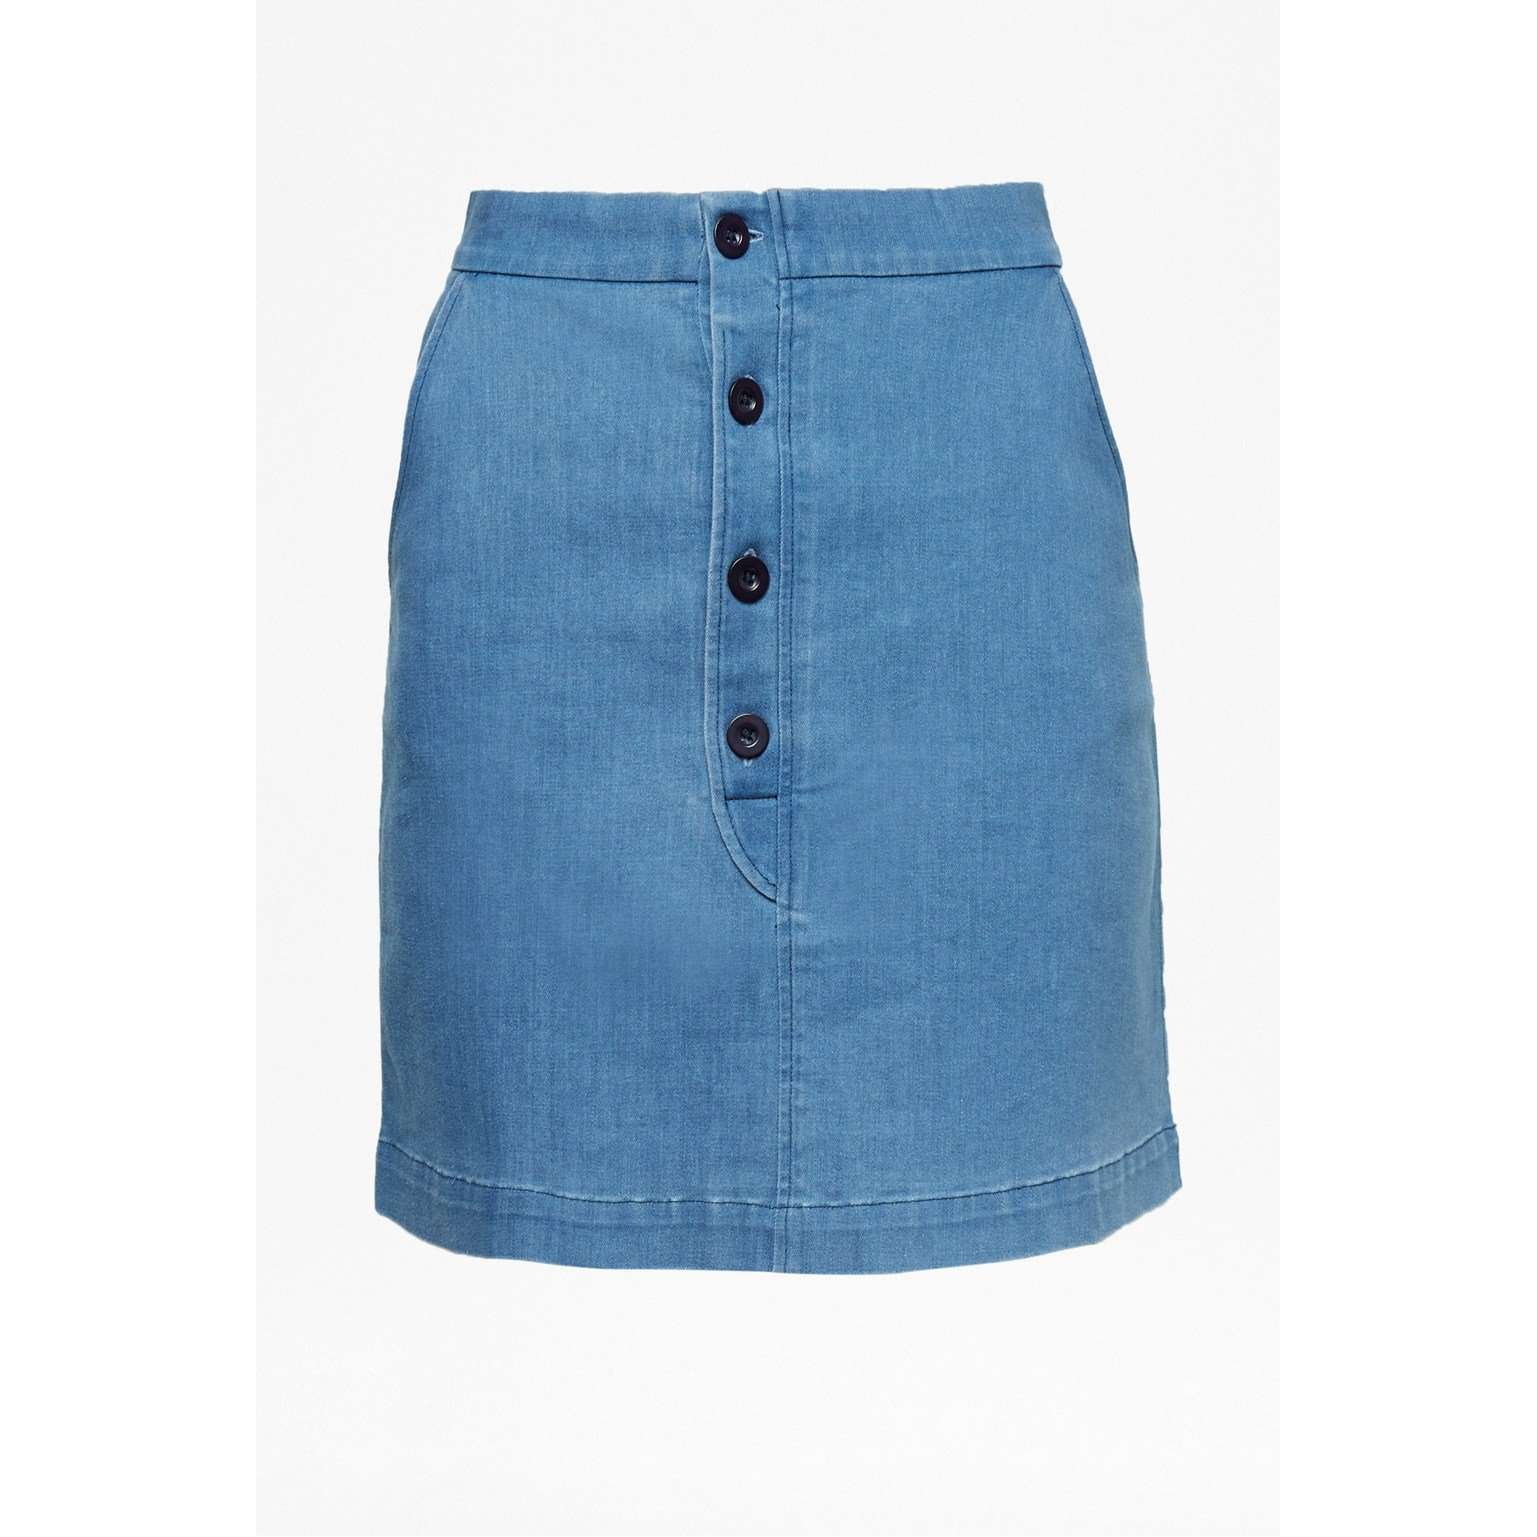 Desert Denim Button Short Skirt 12